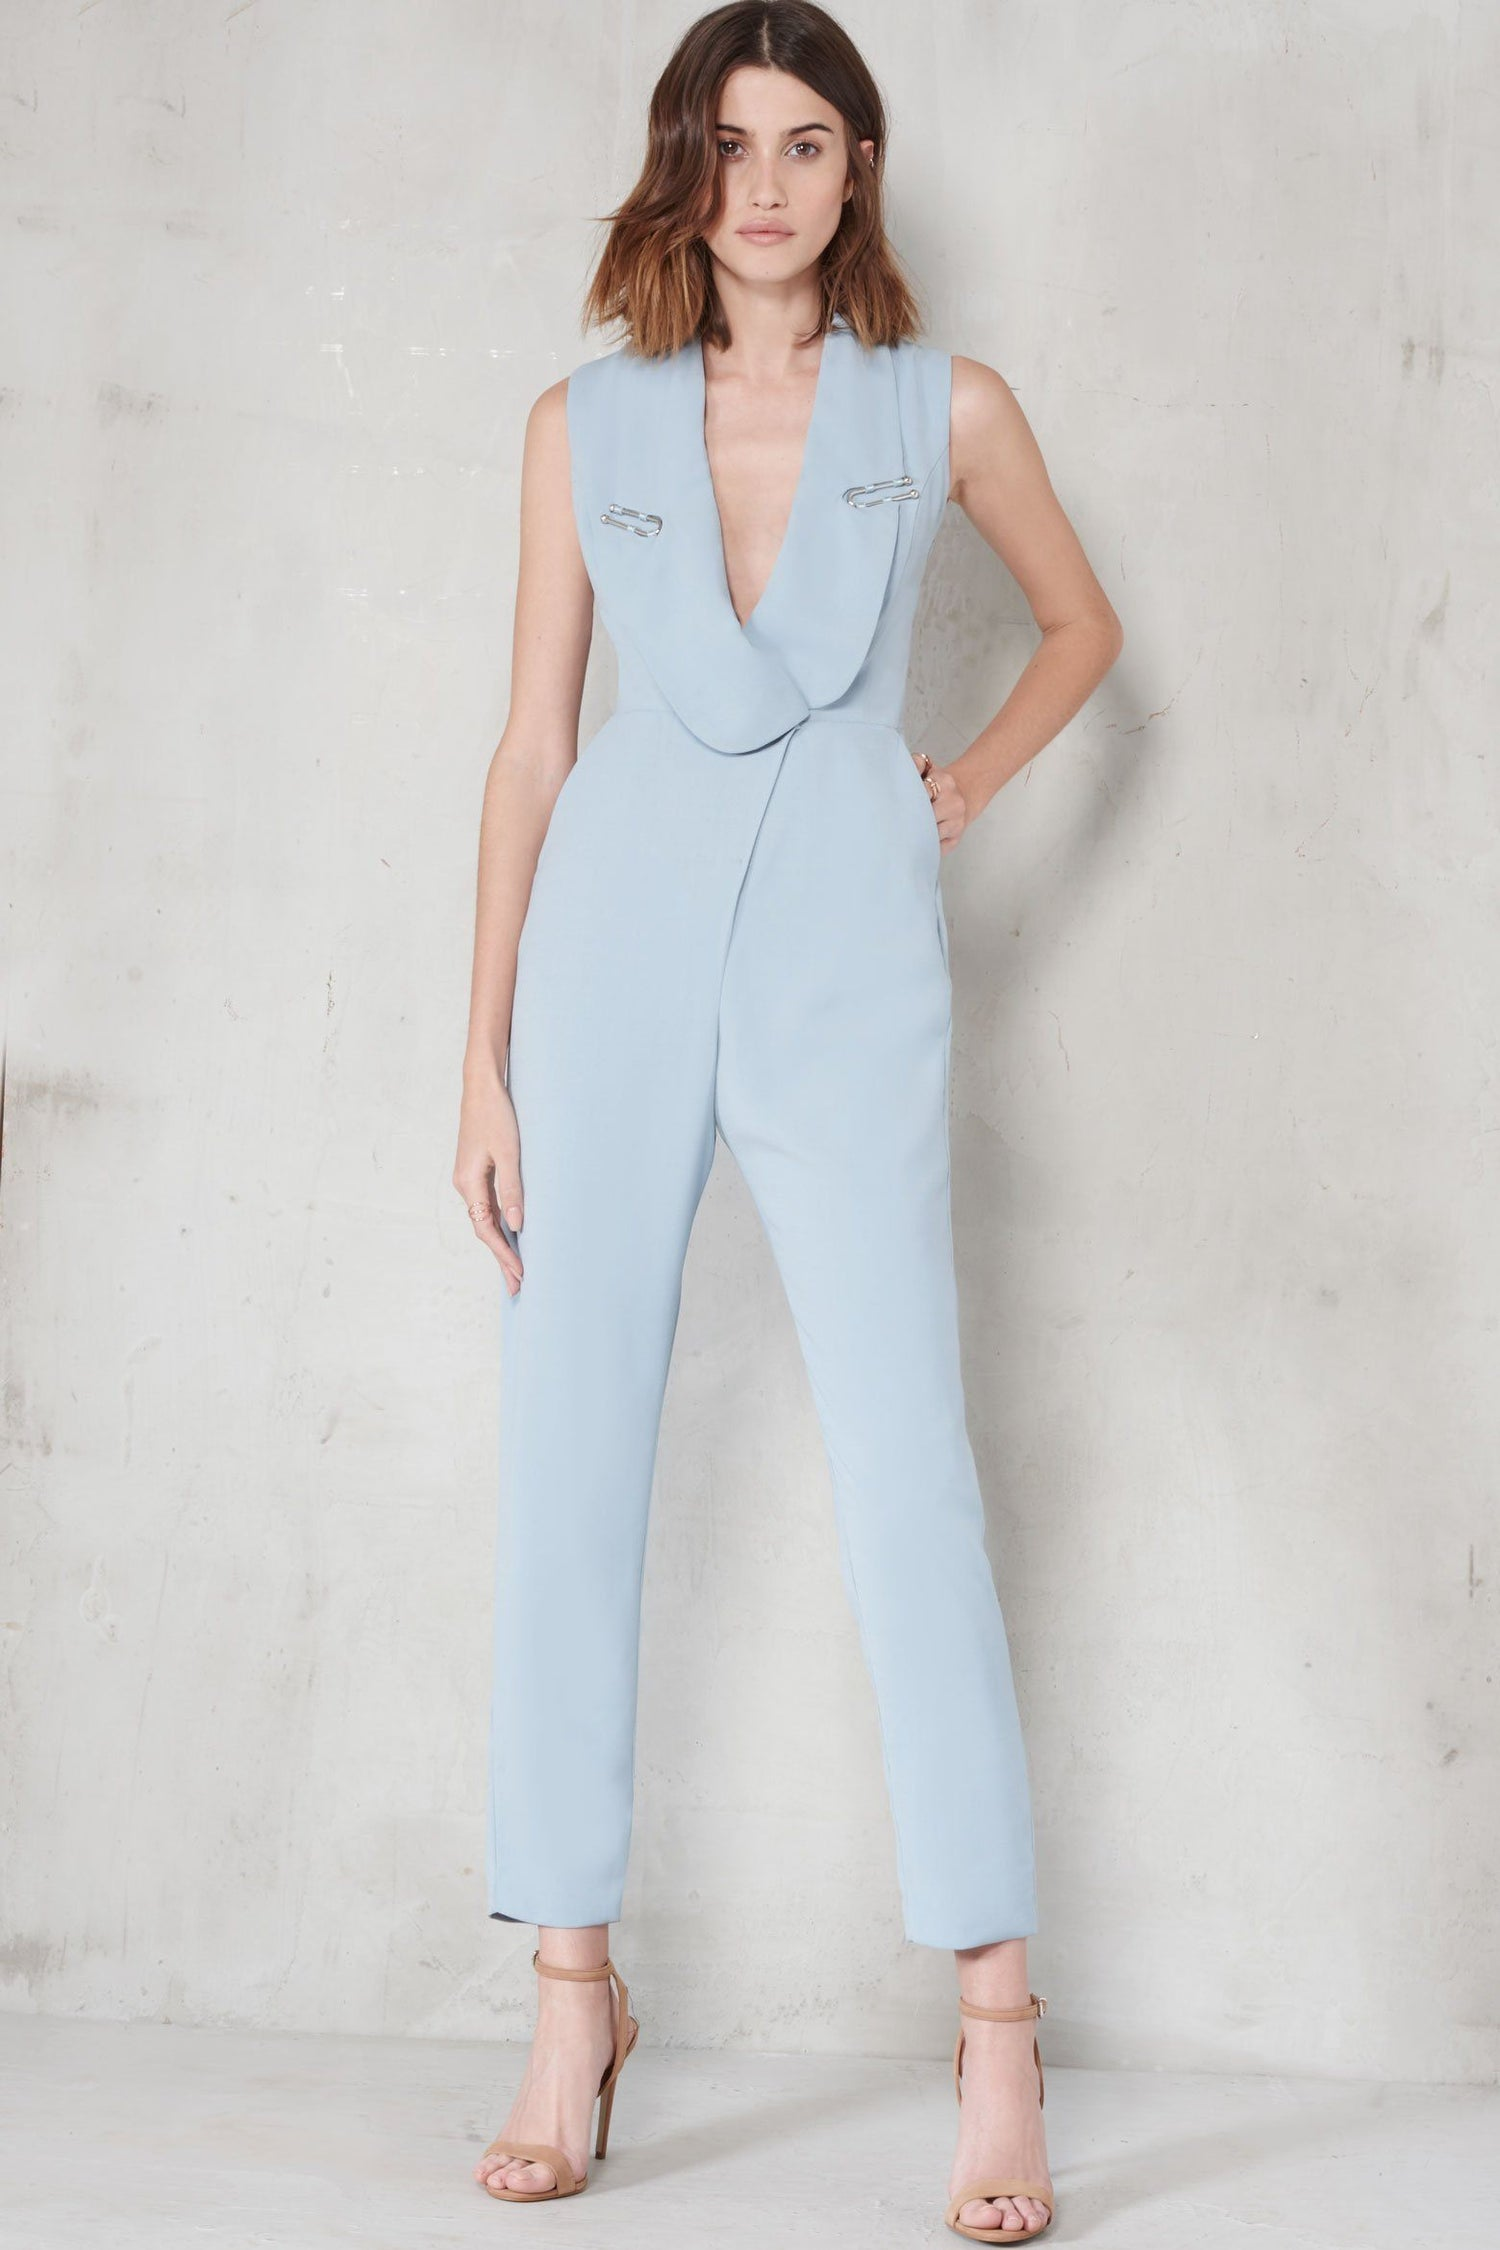 Powder Blue Metal Lapel Trim Blazer Style Jumpsuit